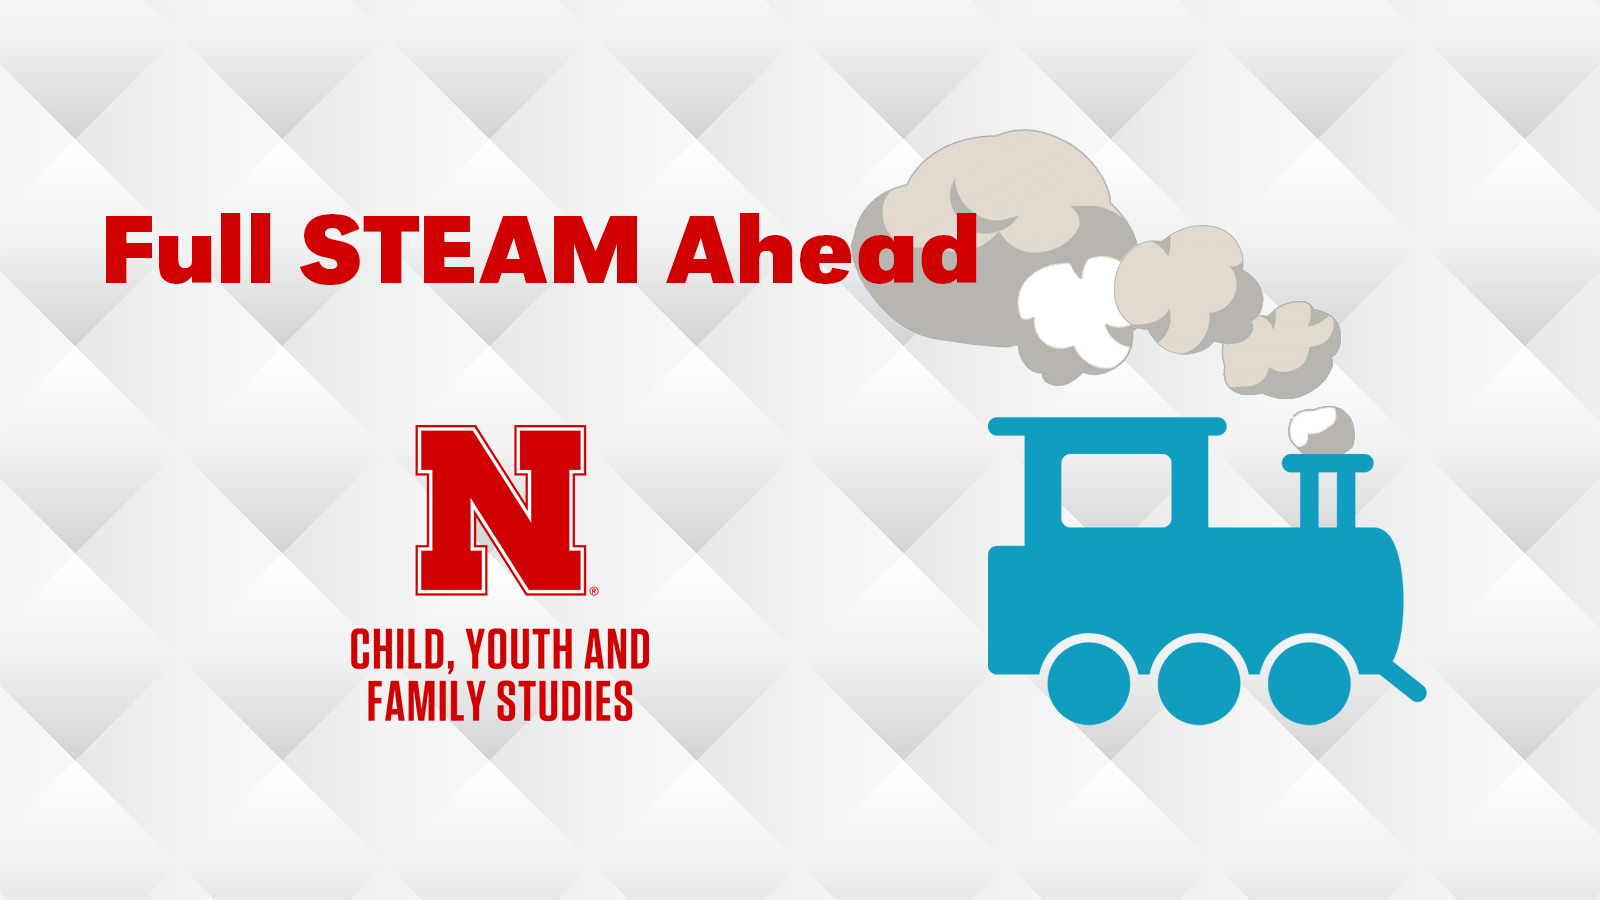 Full STEAM Ahead scheduled for 1-4 p.m., Oct. 29 at the East Campus Union.